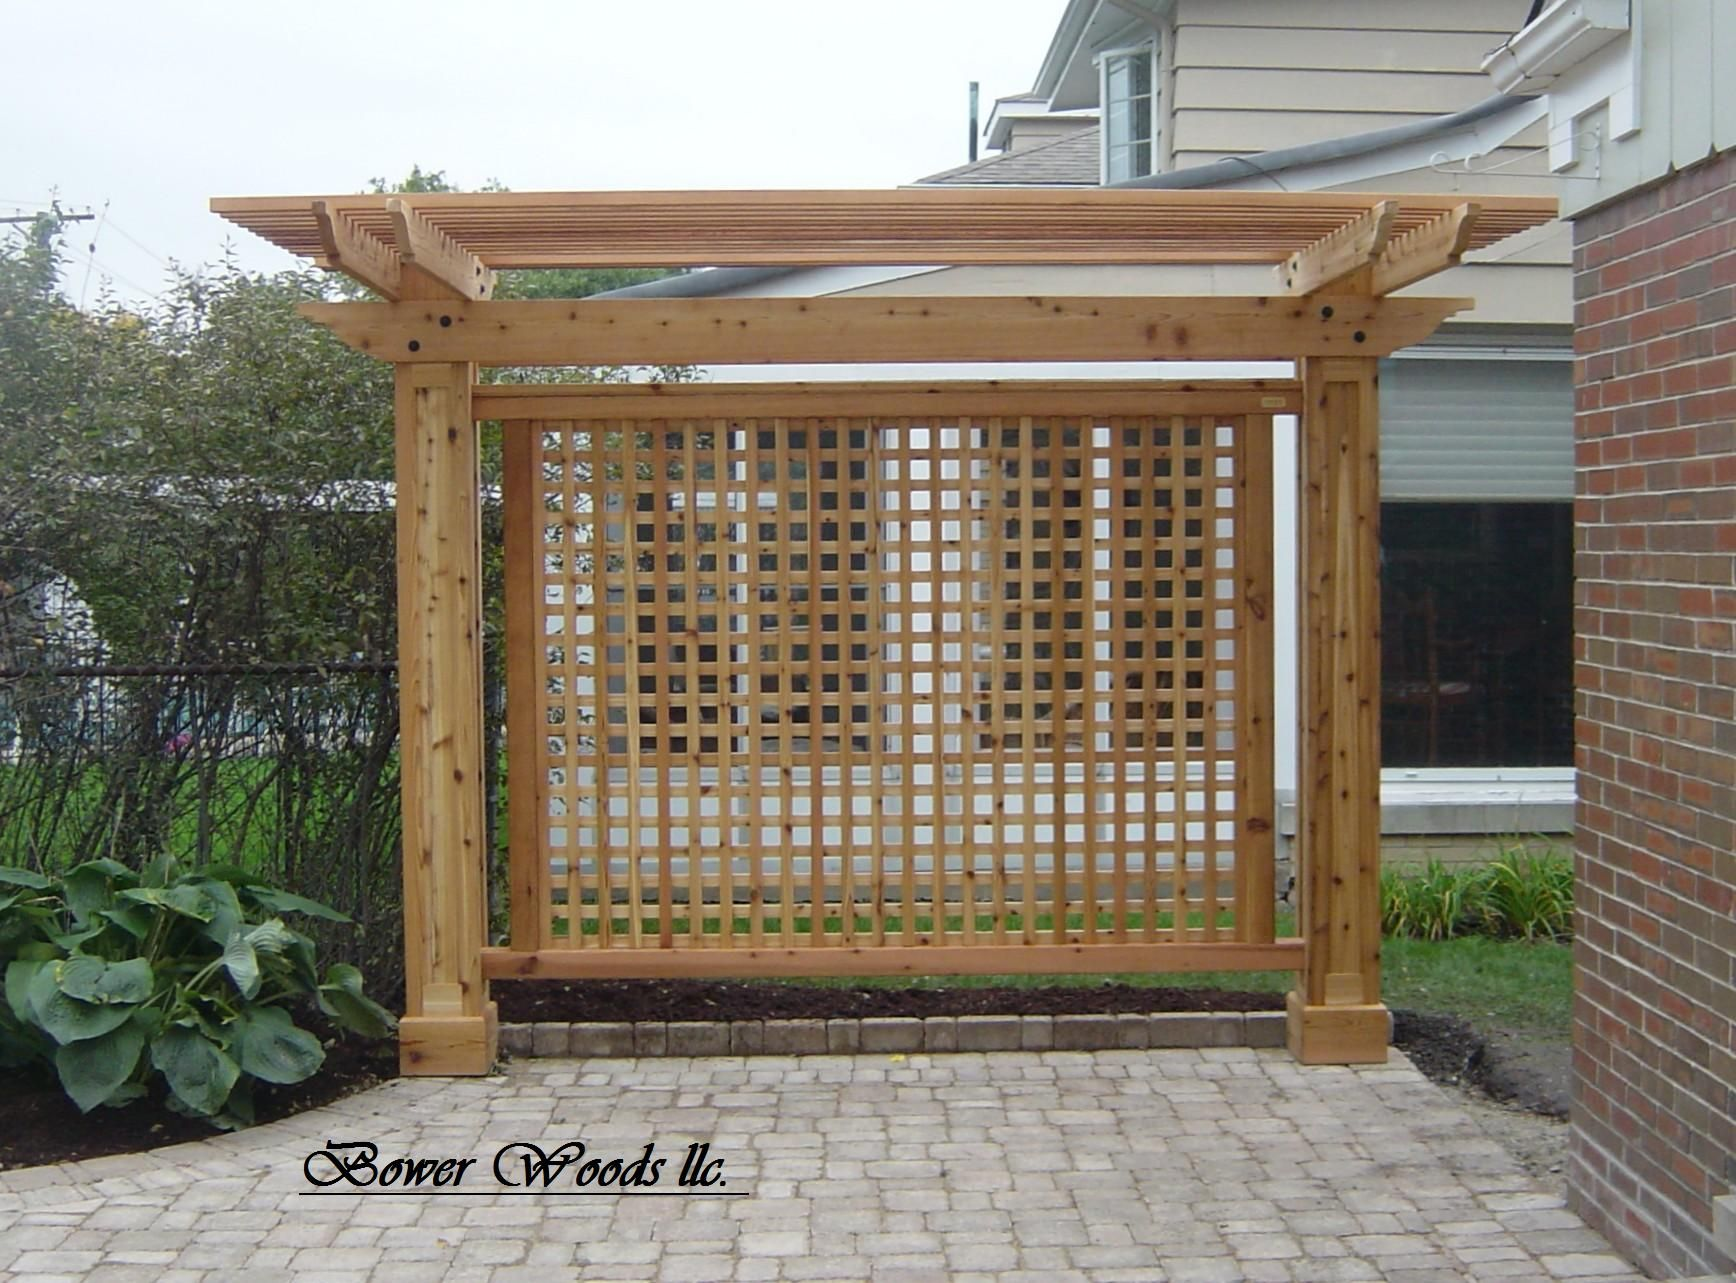 17 best ideas about trellis design on pinterest garden mirrors garden privacy and outdoor mirror - Trellis Design Ideas